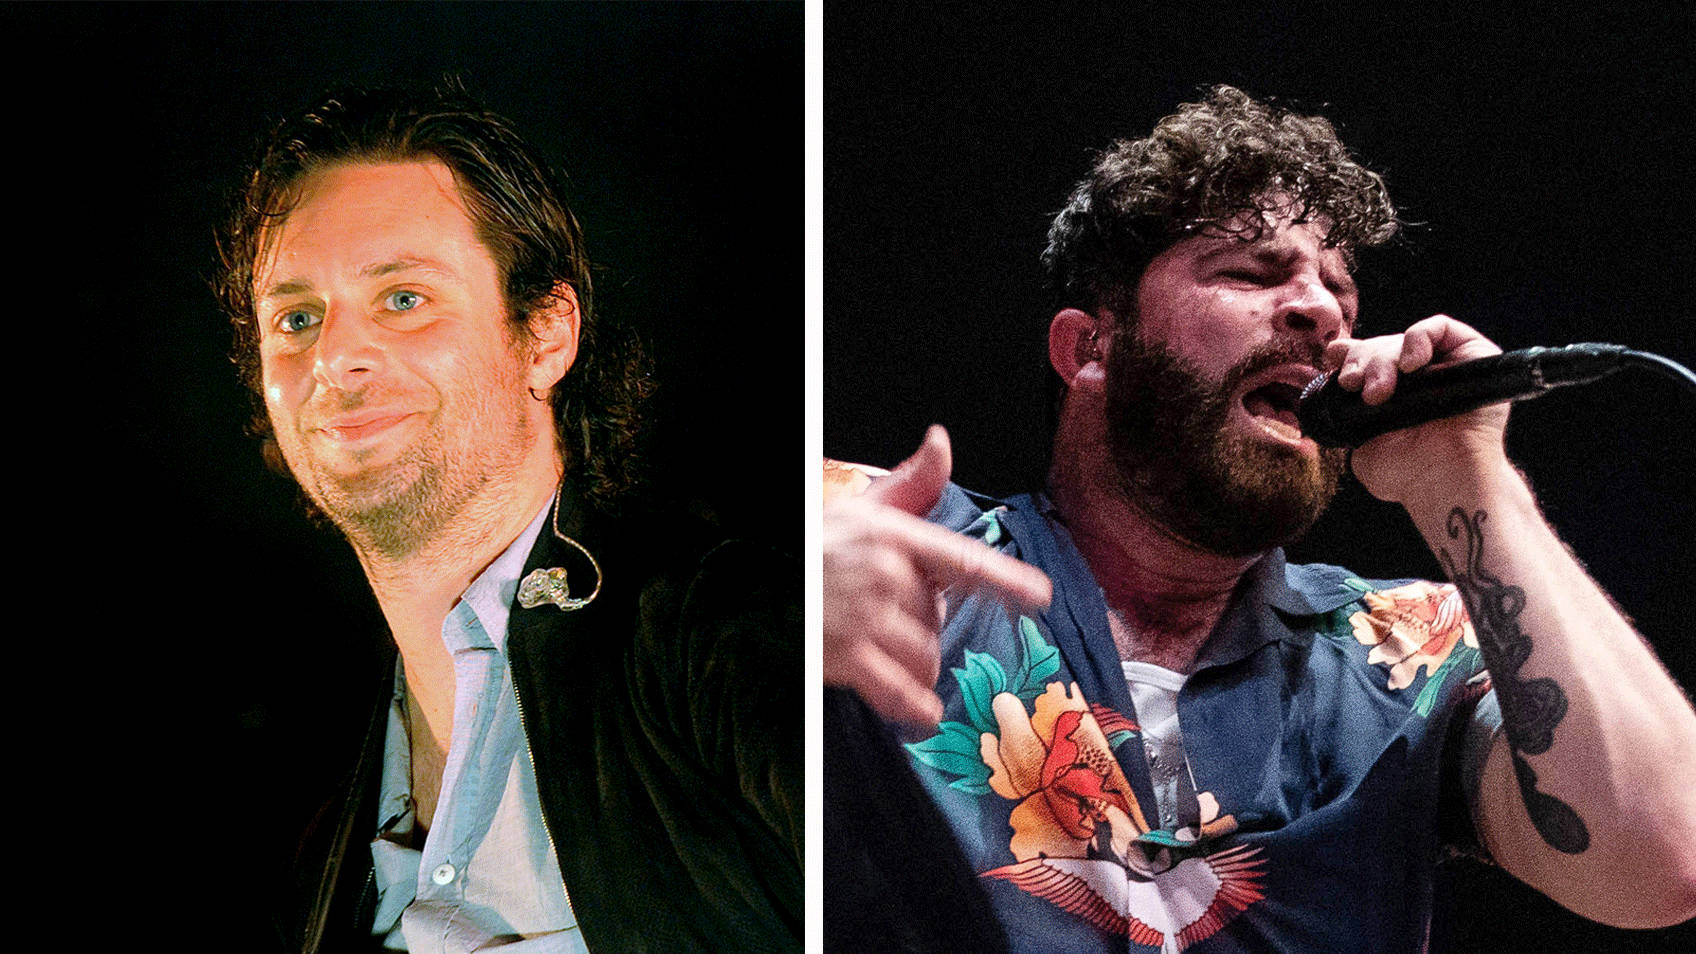 WATCH: Former Maccabees' guitarist Felix White plays with Foals at Mercury Prize after Yannis cuts hand